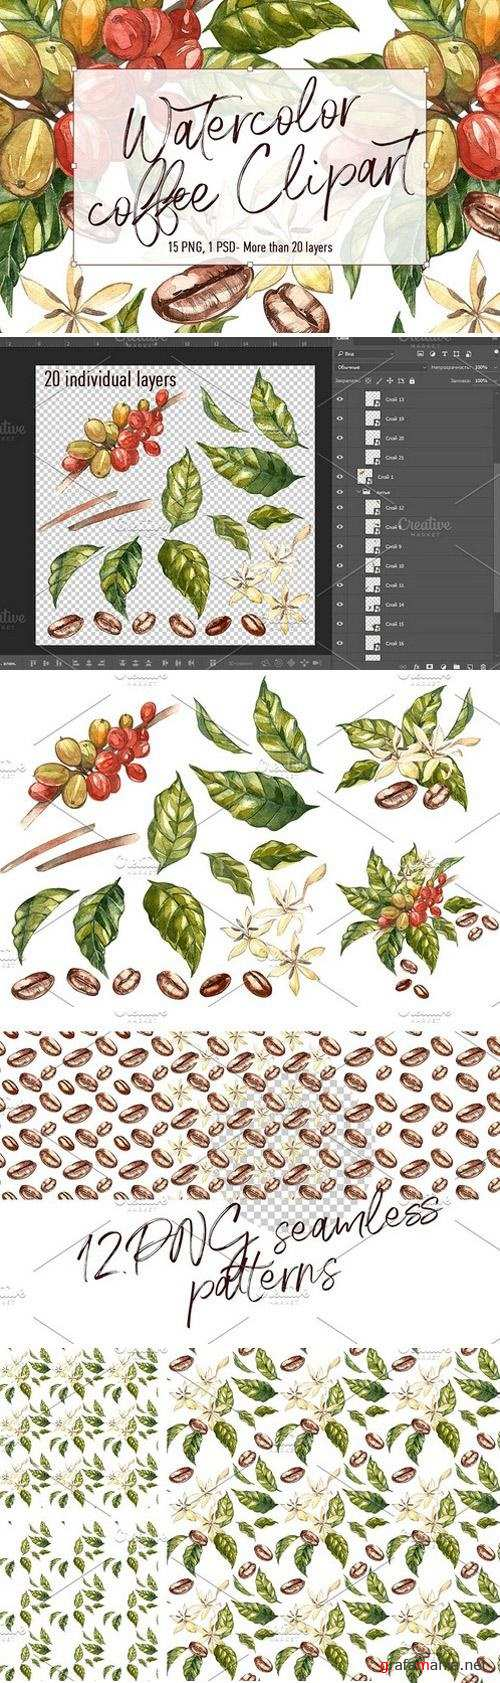 Coffee in botanical style 1623003